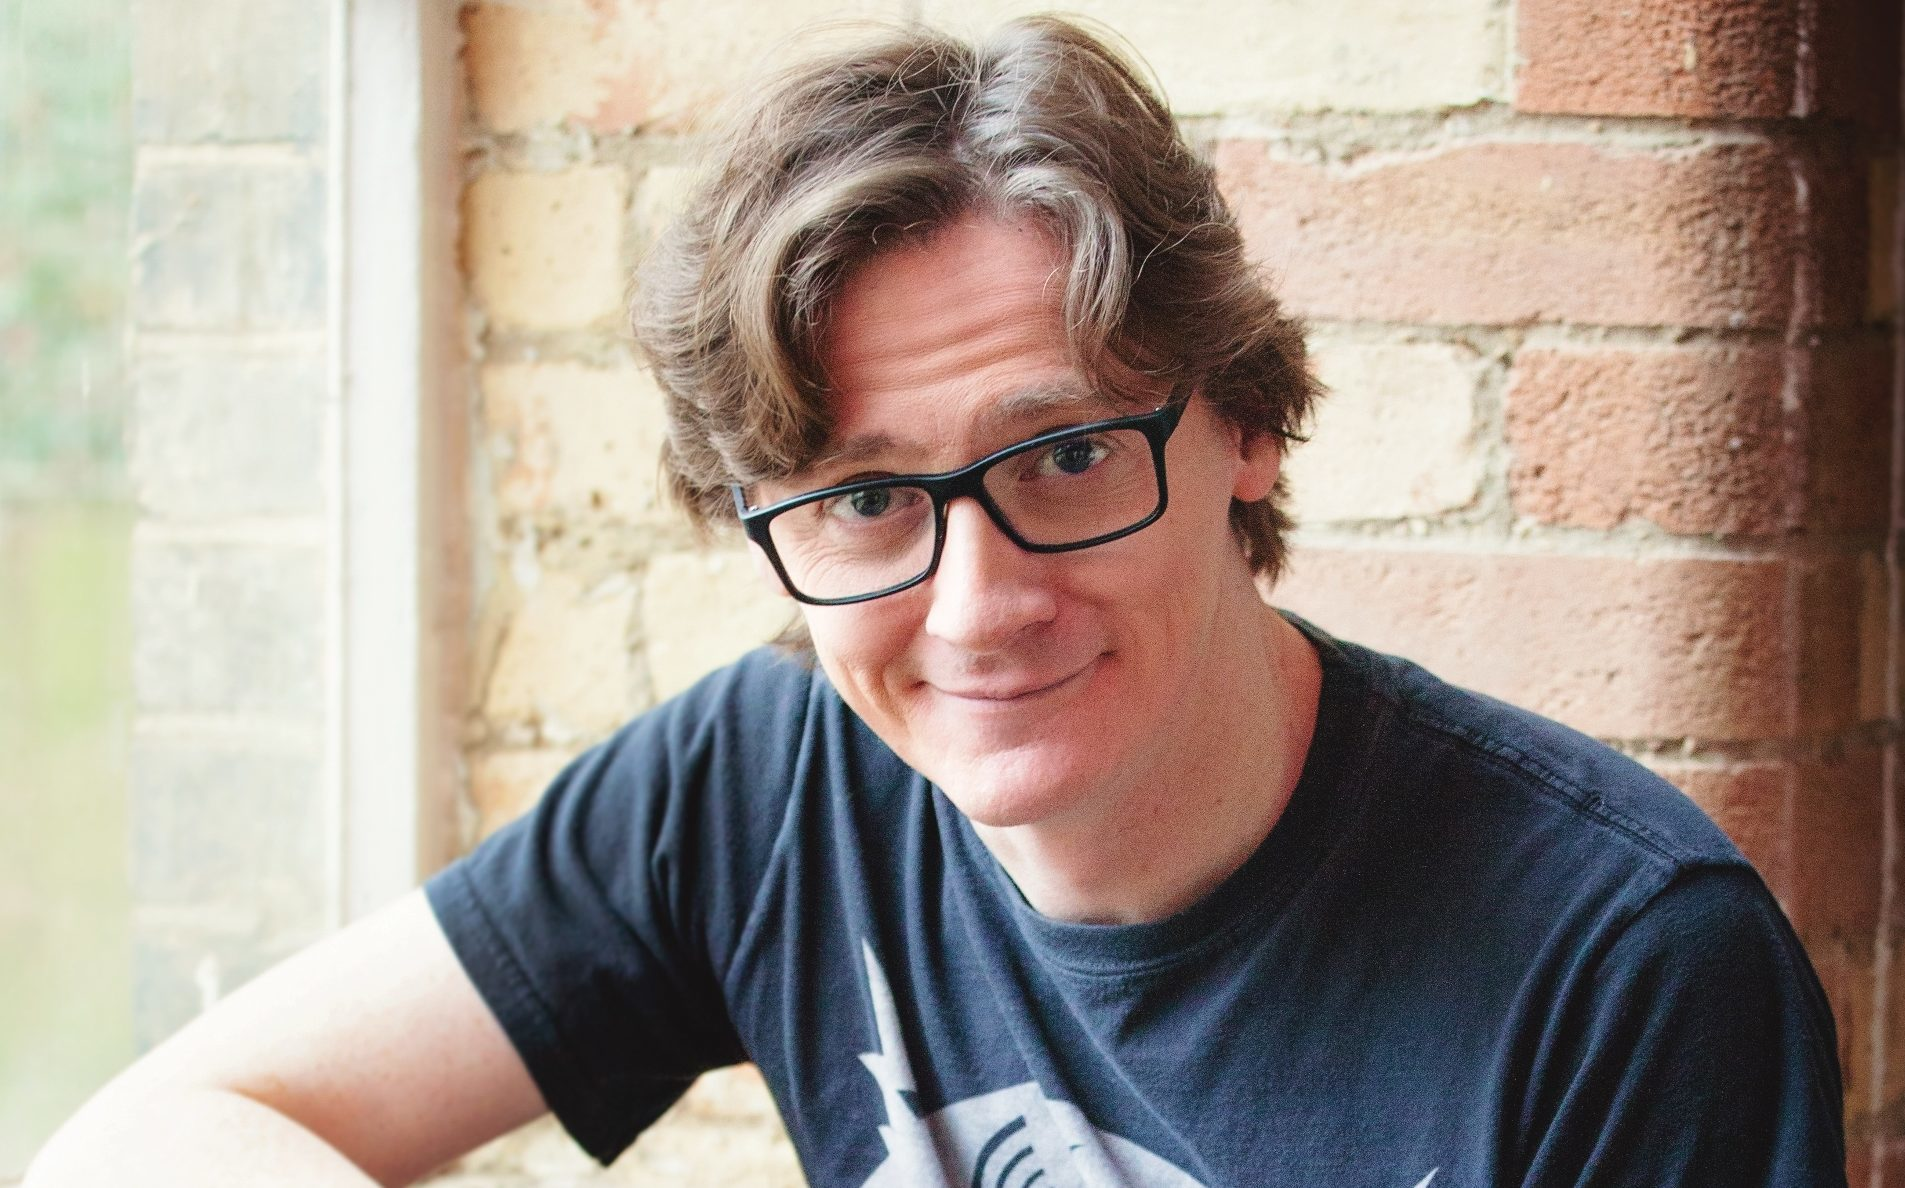 Comedian Ed Byrne answers our 10 questions (Roslyn Gaunt)